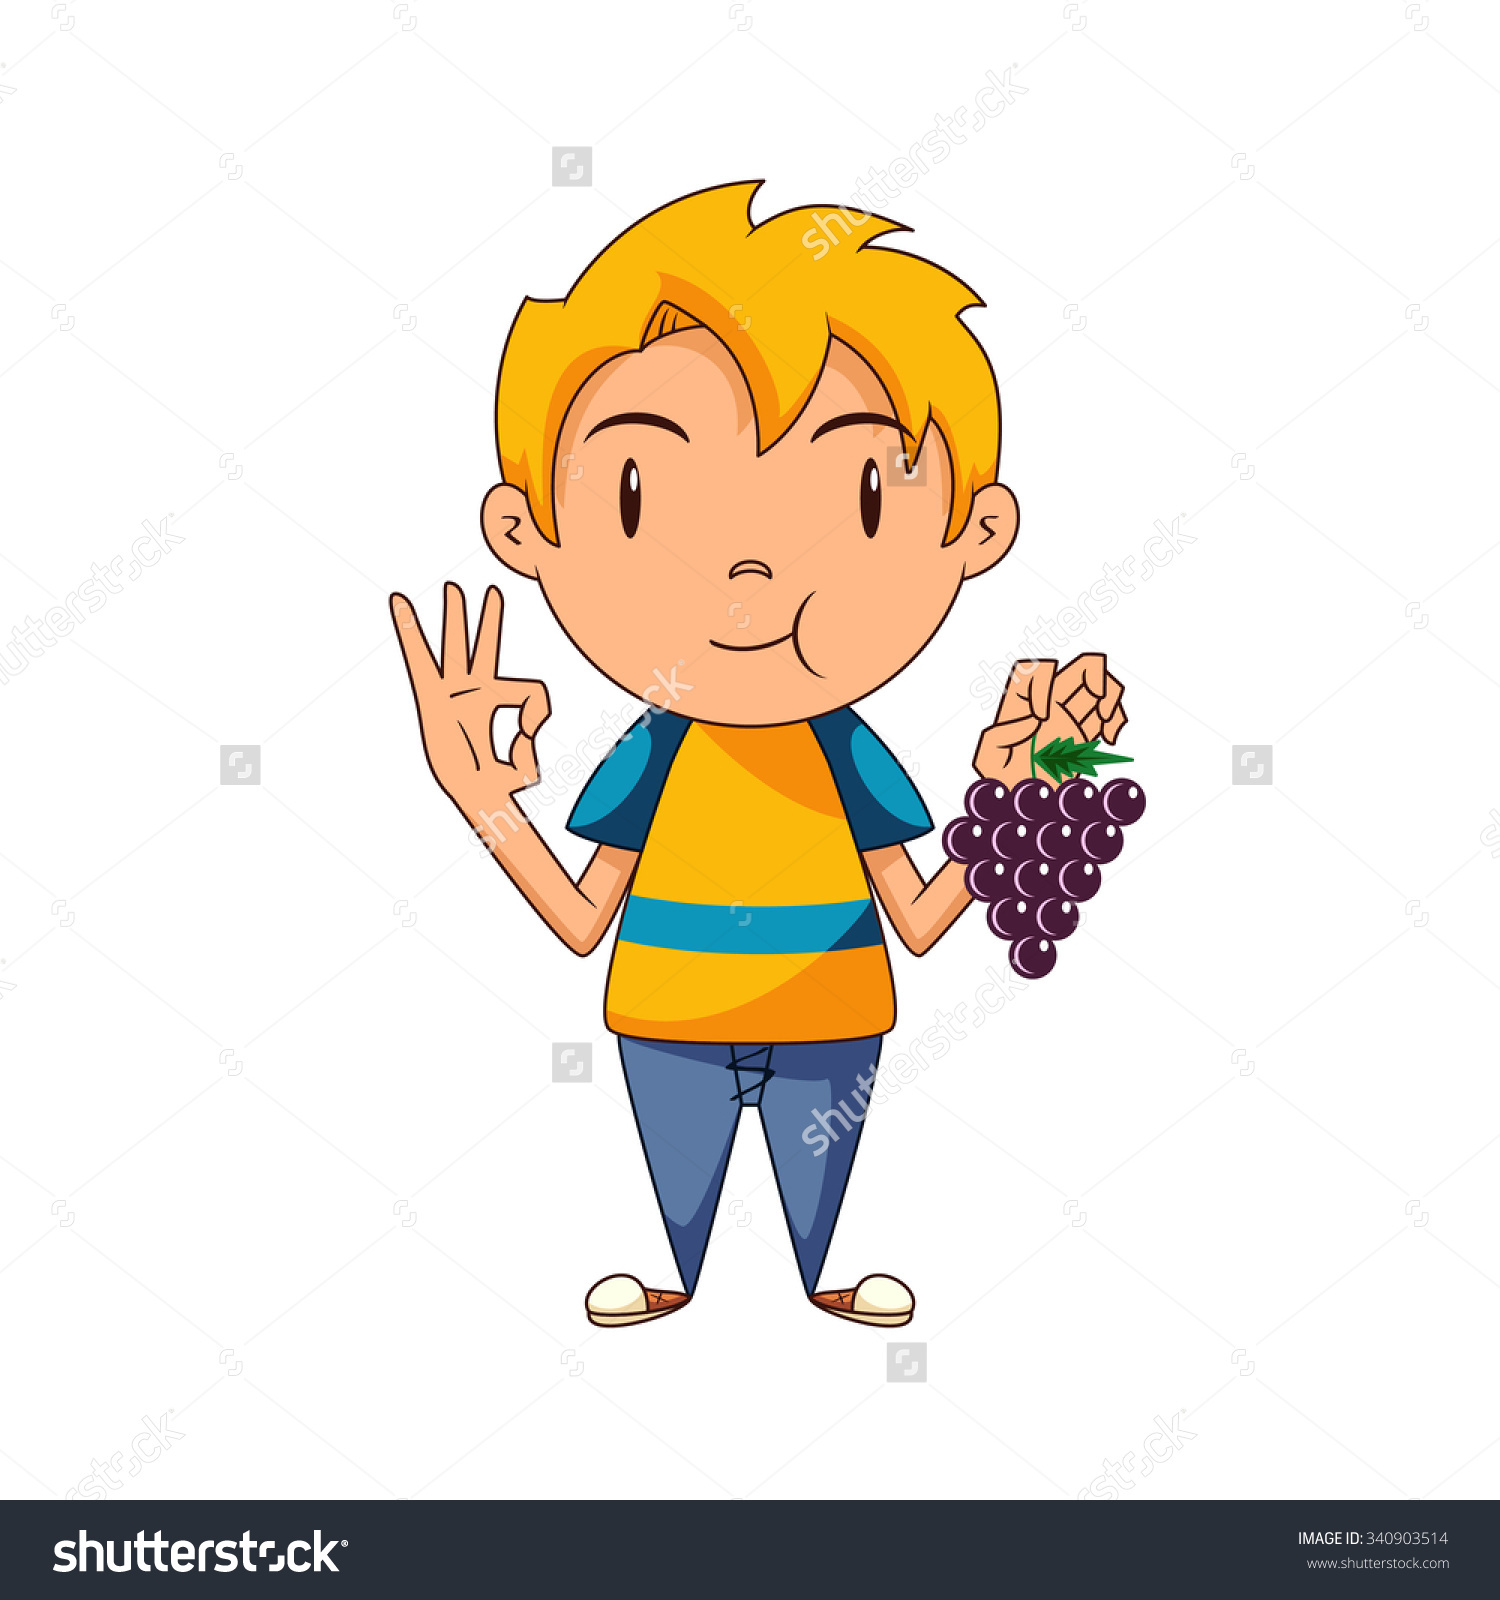 Kid Eating Grapes Vector Illustration Stock Vector 340903514.